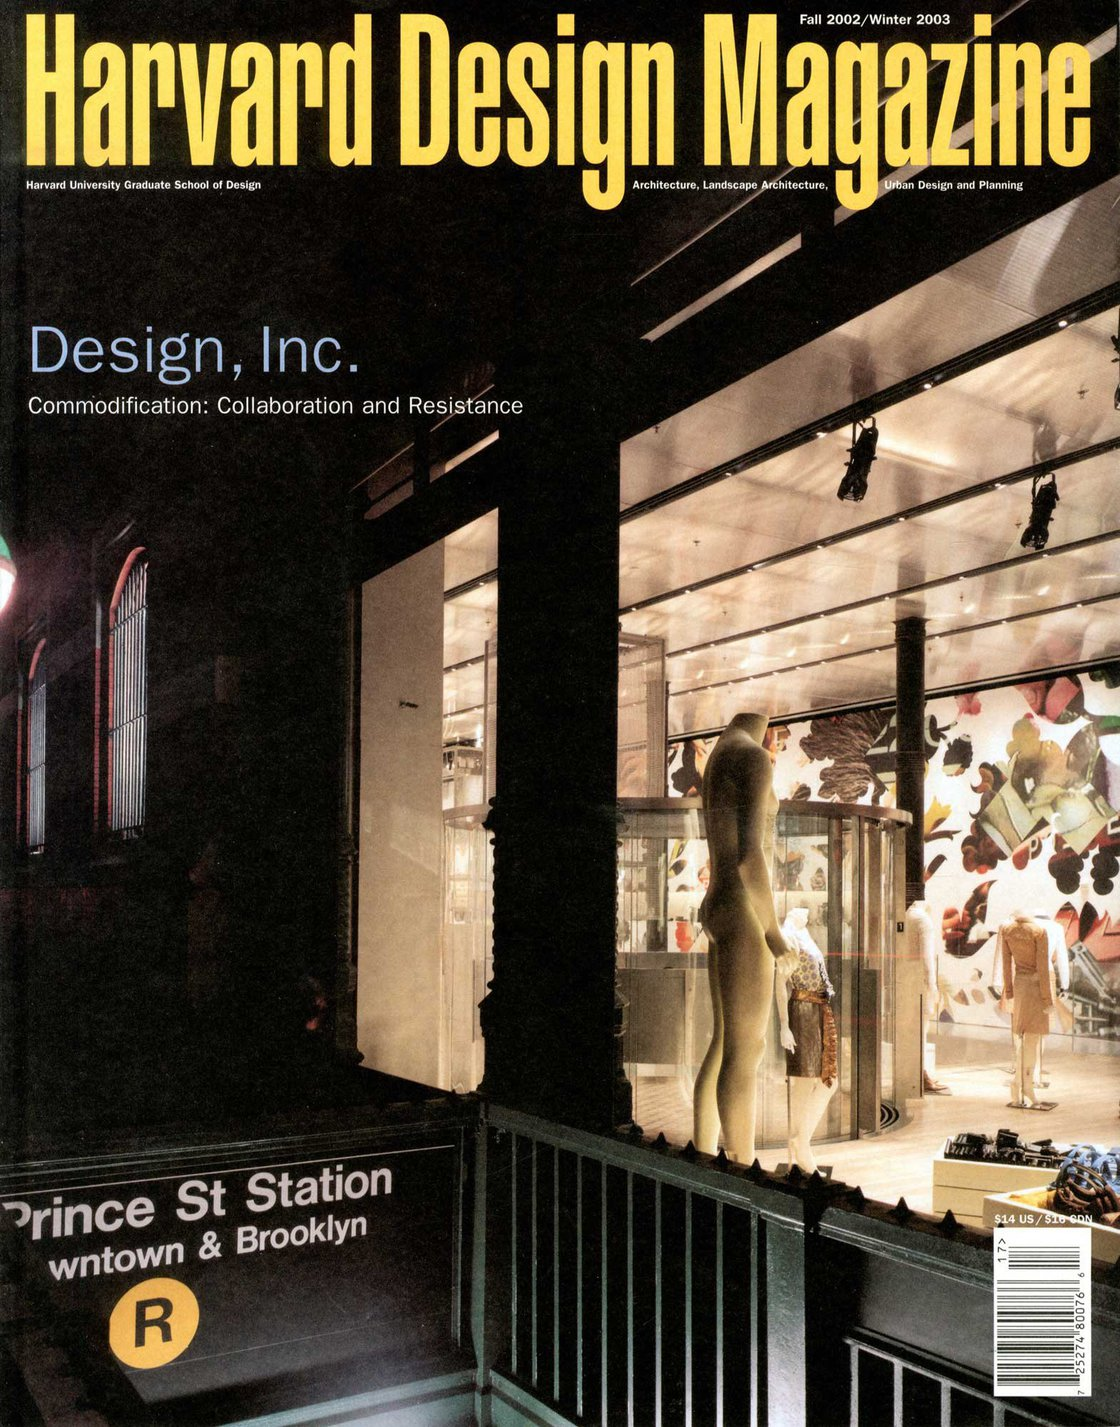 No. 17, F/W 2002 Design, Inc. Commodification: Collaboration and Resistance